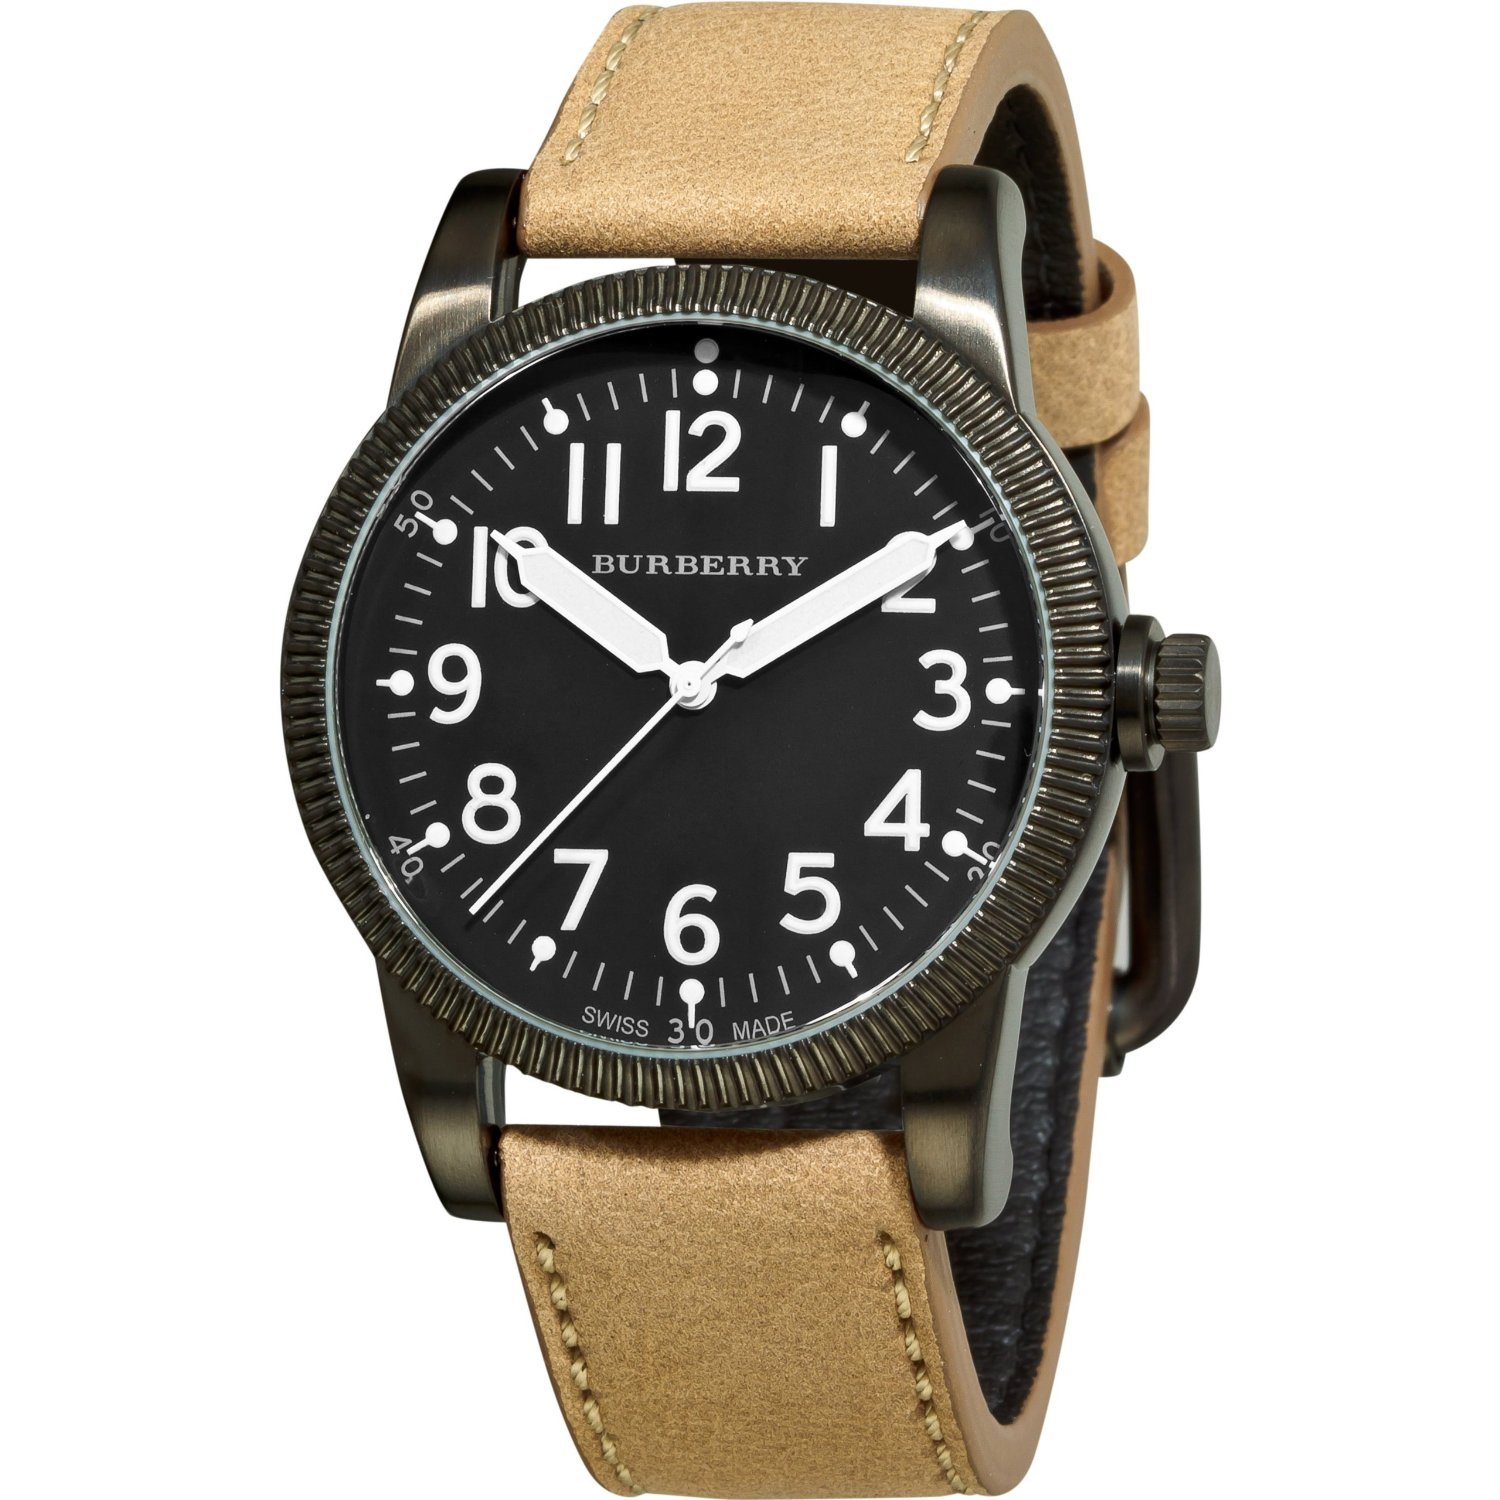 *New* BURBERRY Mens Watch Brown Leather Military Steel ...